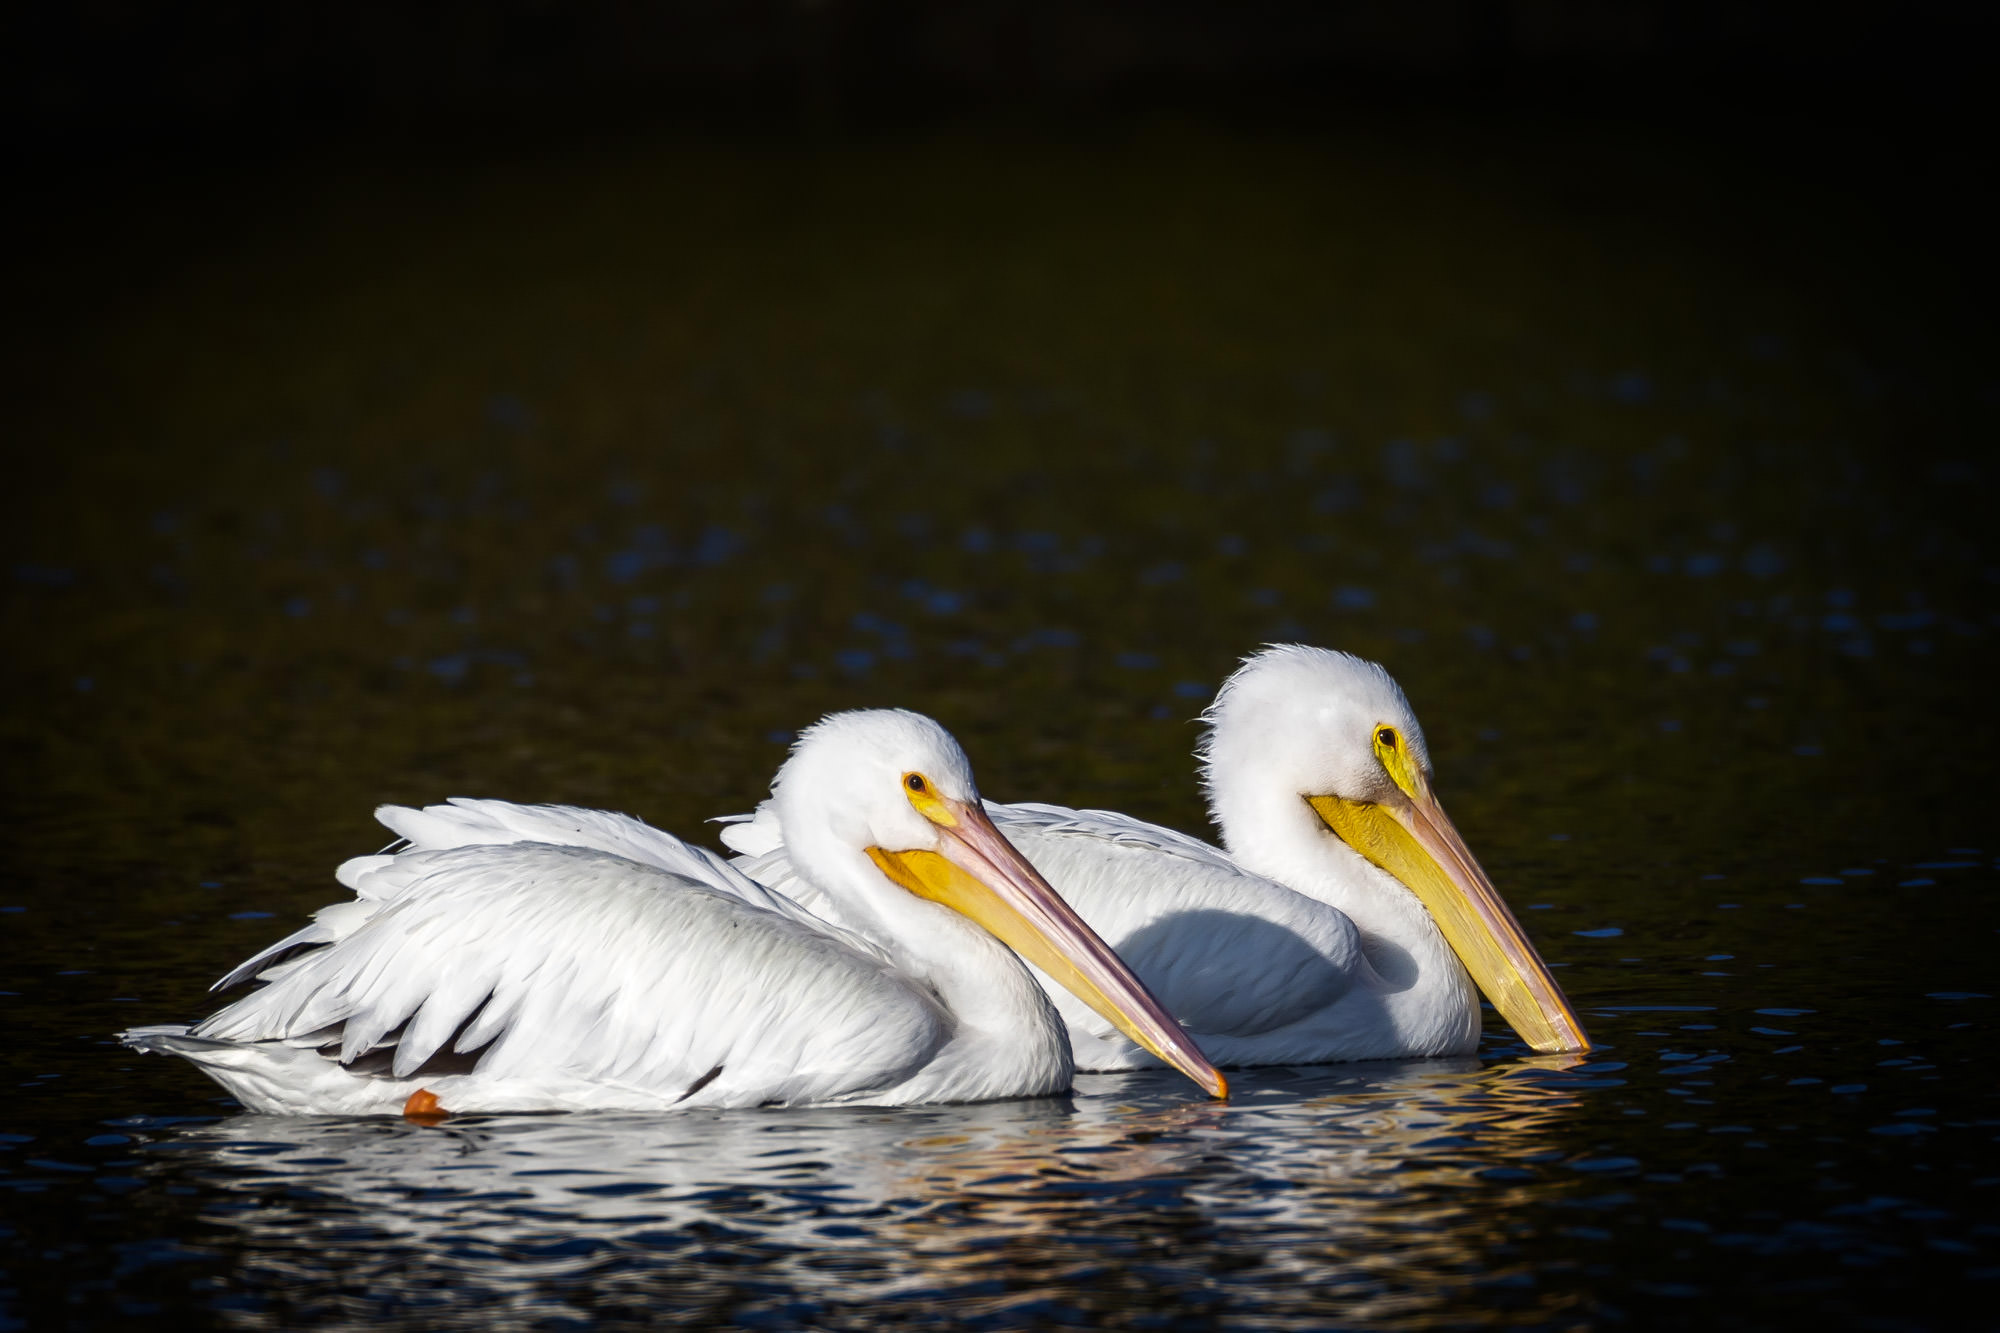 Pelican, White Pelican, Florida, limited edition, photograph, photo